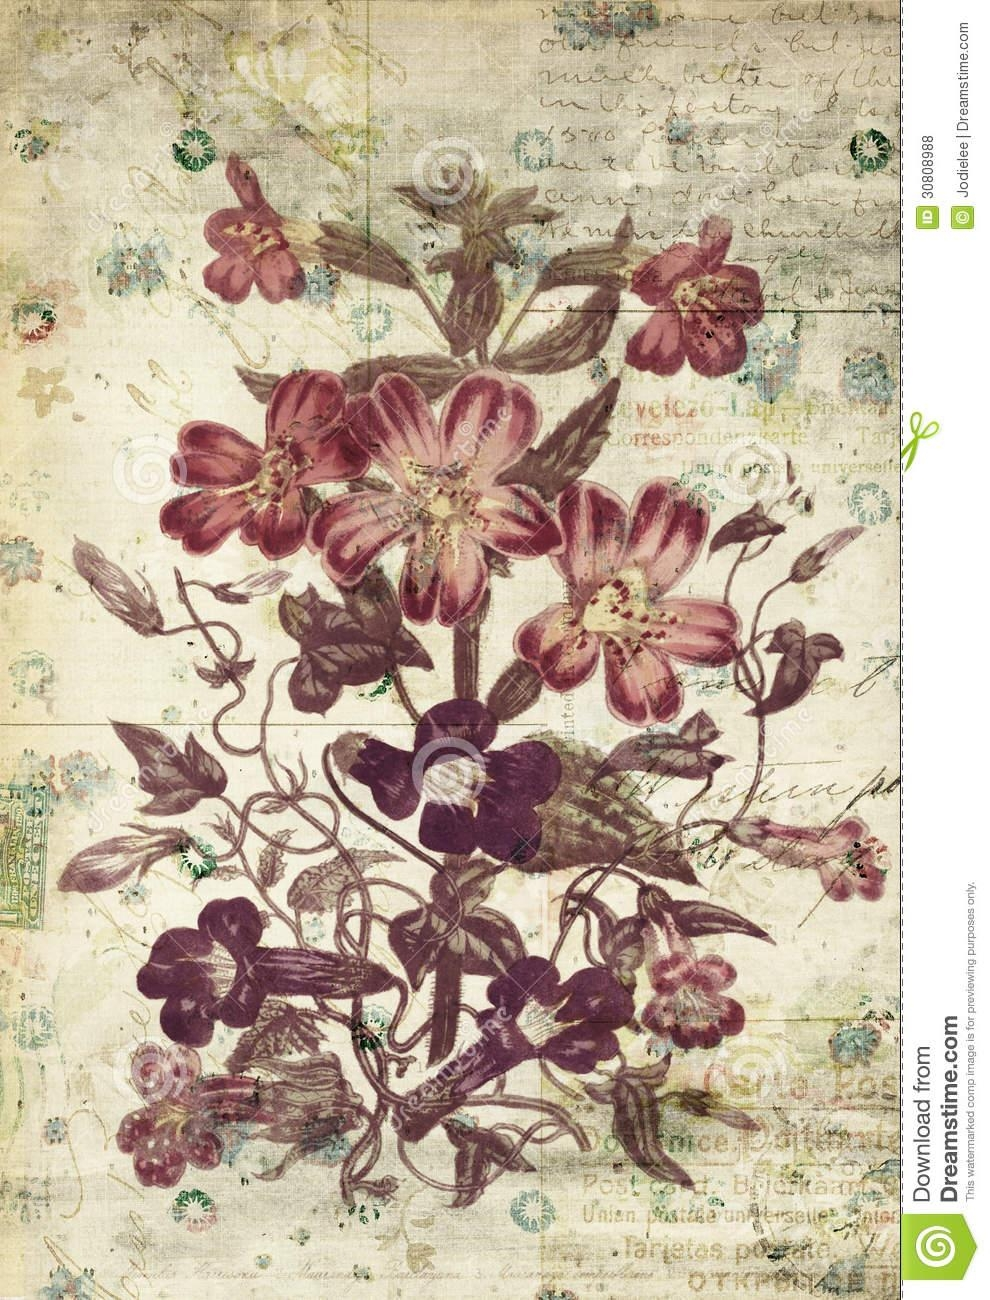 Flowers Botanical Vintage Style Wall Art With Textured Background With Vintage Style Wall Art (View 6 of 20)